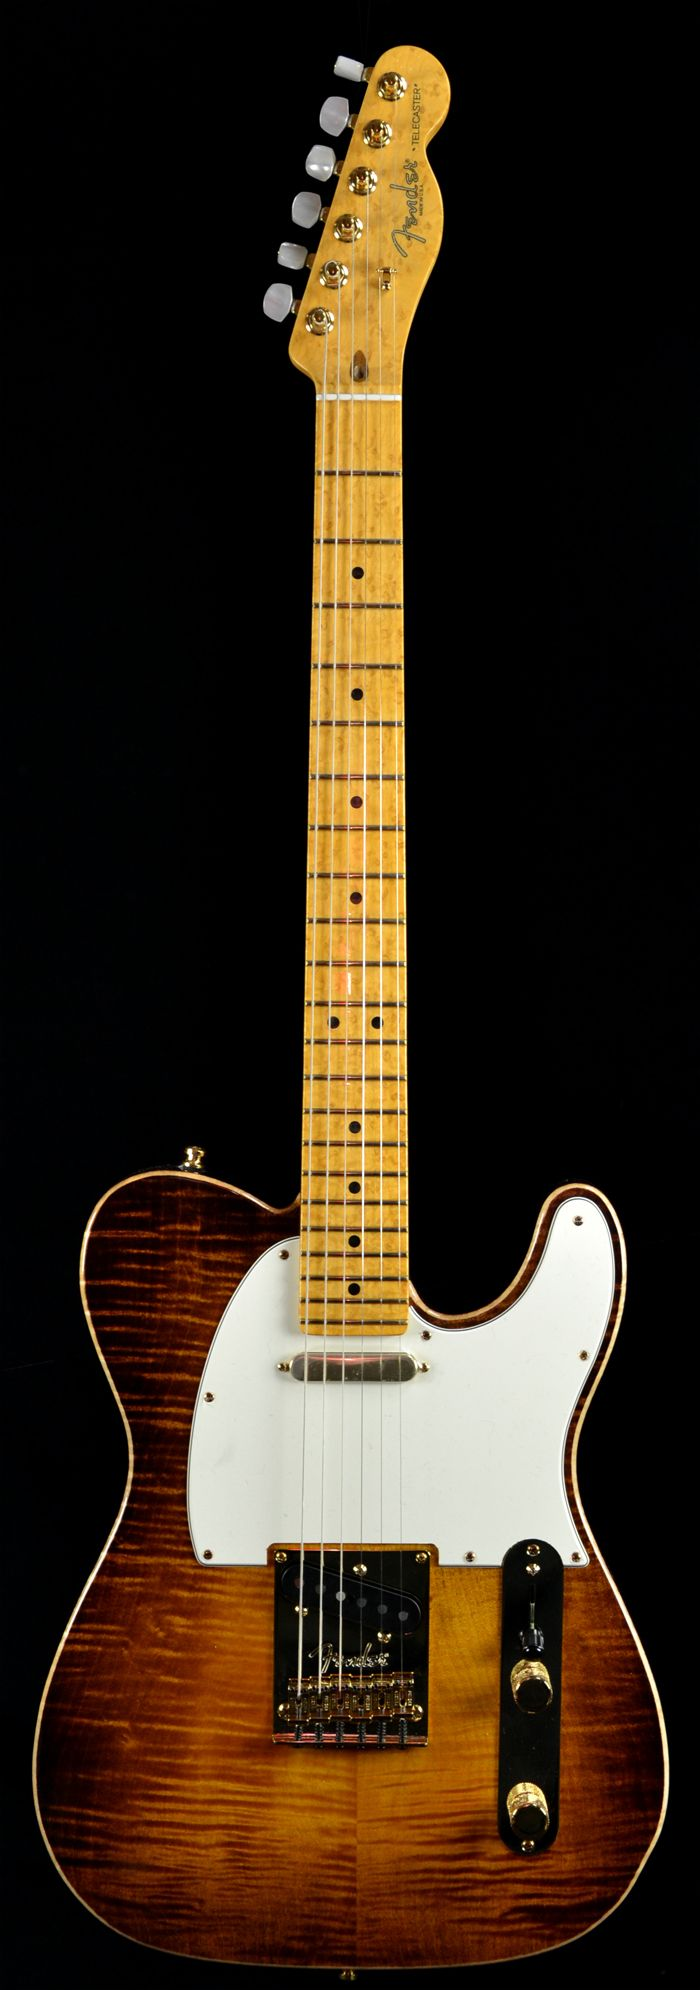 Wild West Guitars : Fender Select Telecaster Chambered Ash Body Violin Burst Gold Hardware